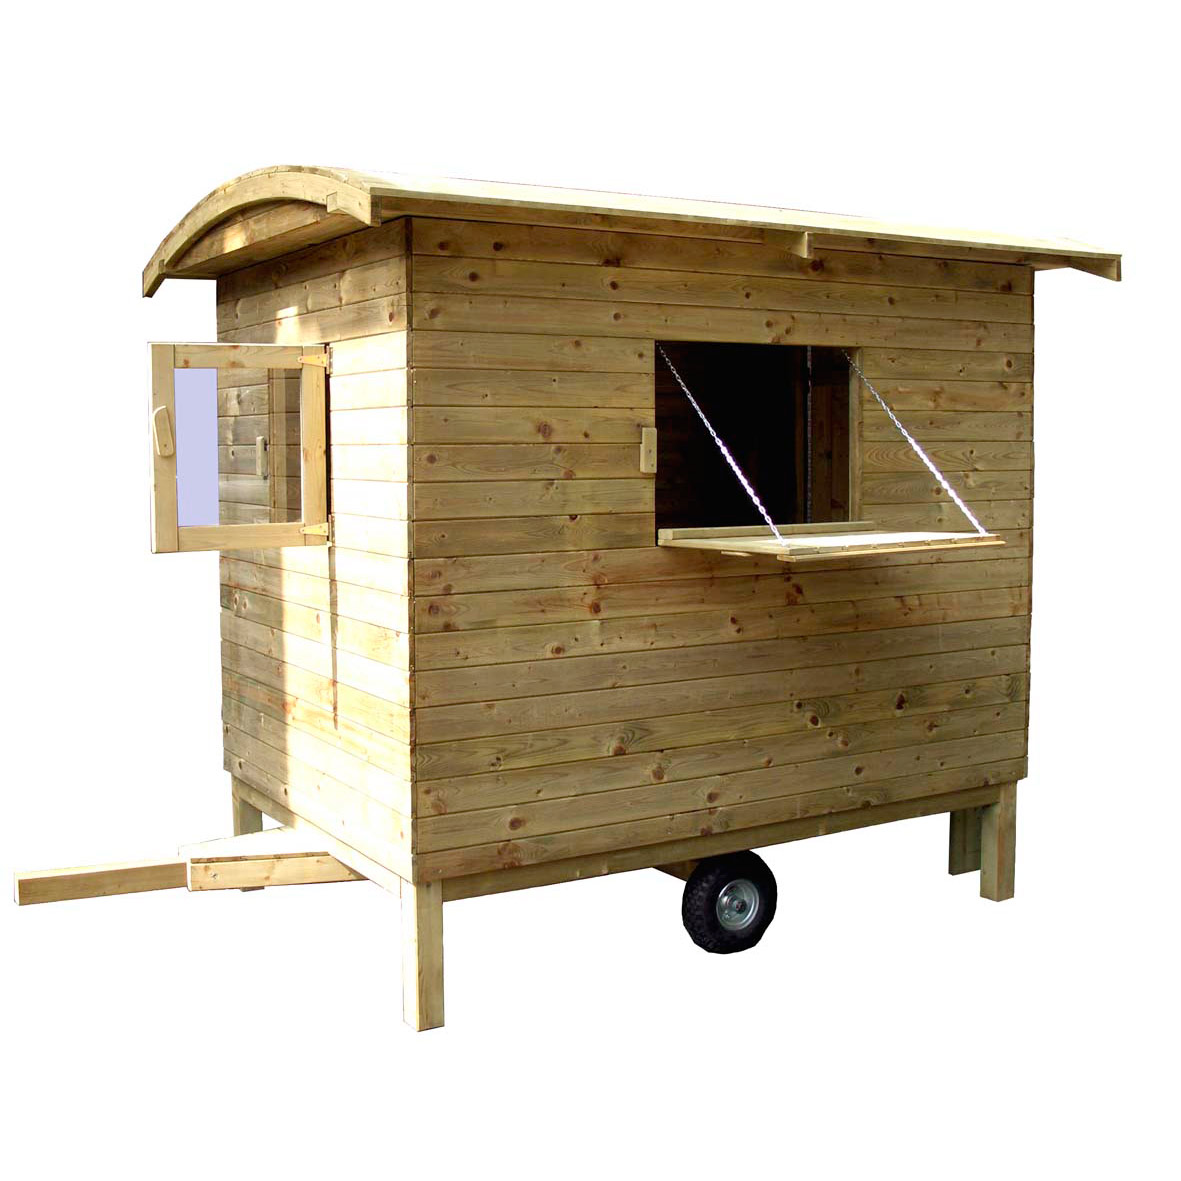 kinderspielhaus bauwagen aus holz holzhaus gartenhaus f r kinder von gartenpirat ebay. Black Bedroom Furniture Sets. Home Design Ideas